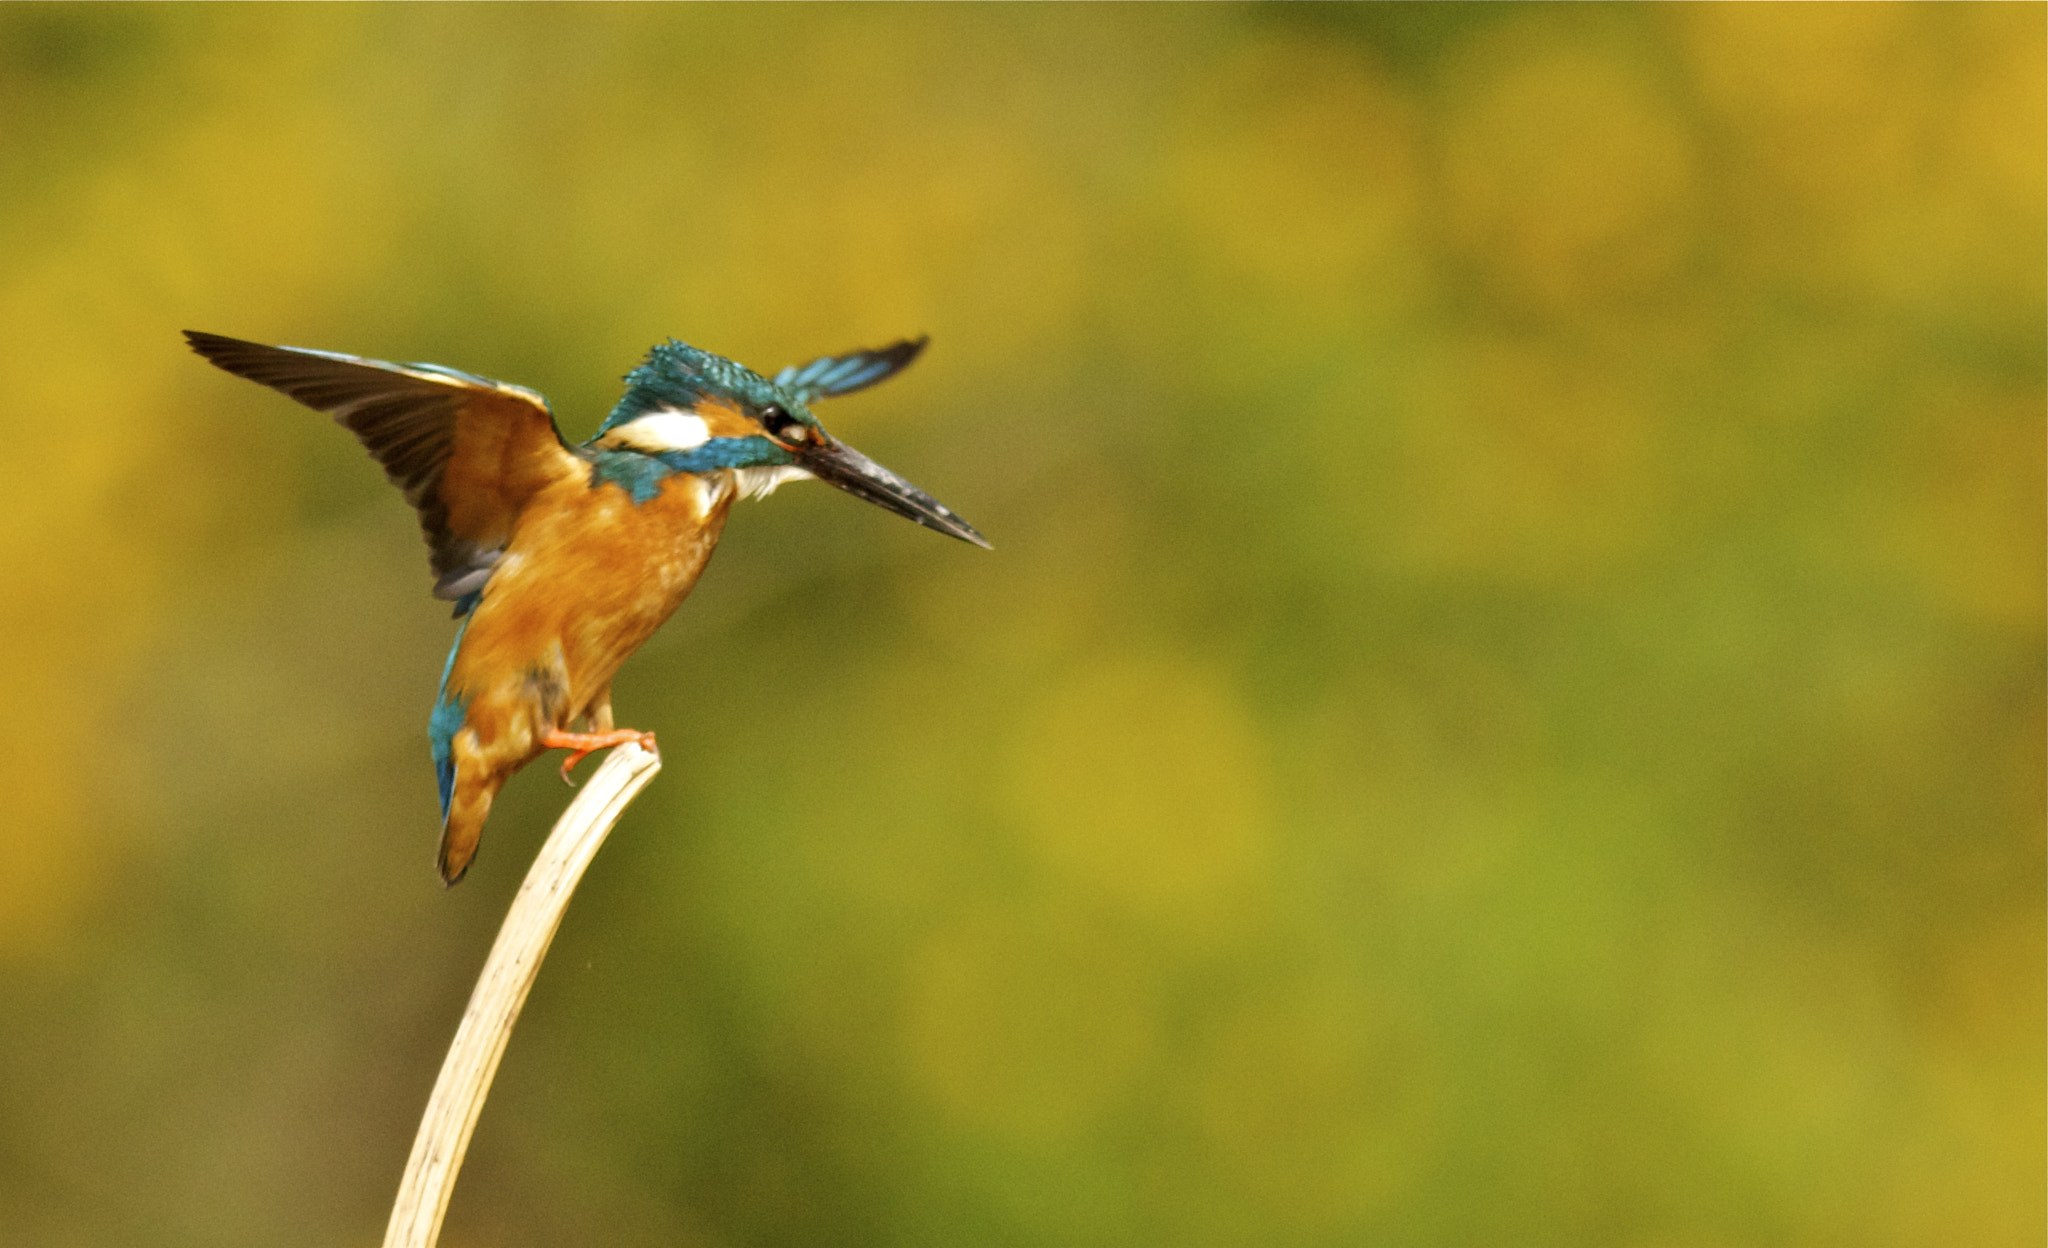 Photograph Making Its Move by Mike Romani on 500px